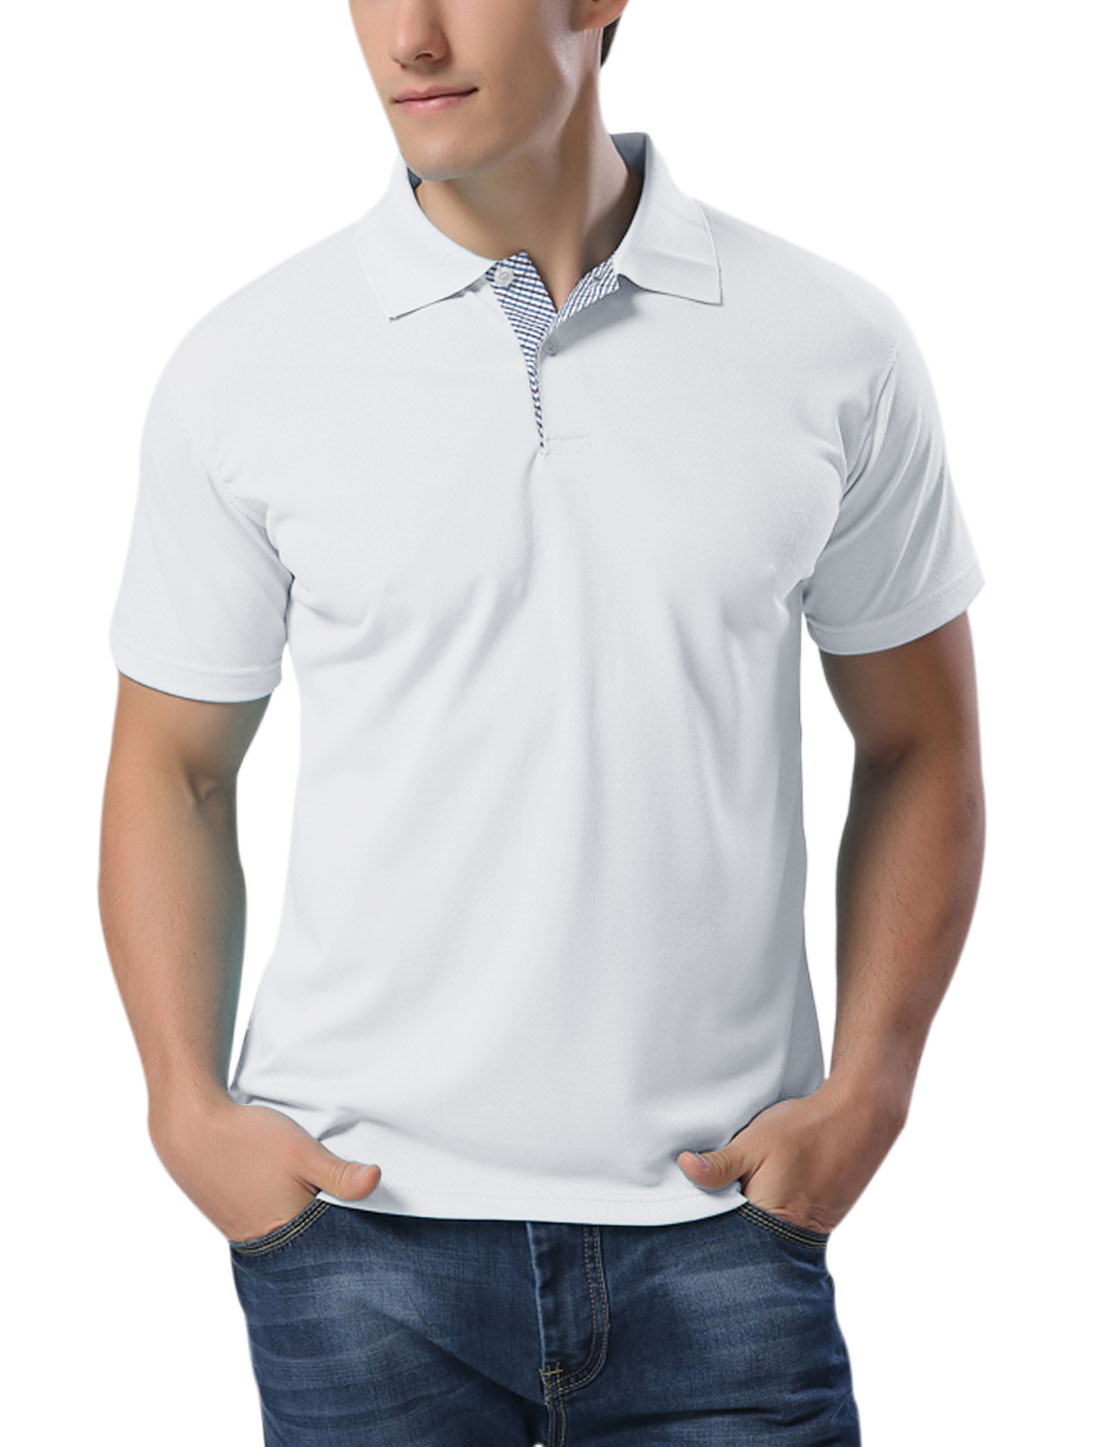 Men Short Sleeves Two Button Closed Casual Polo Shirts White M